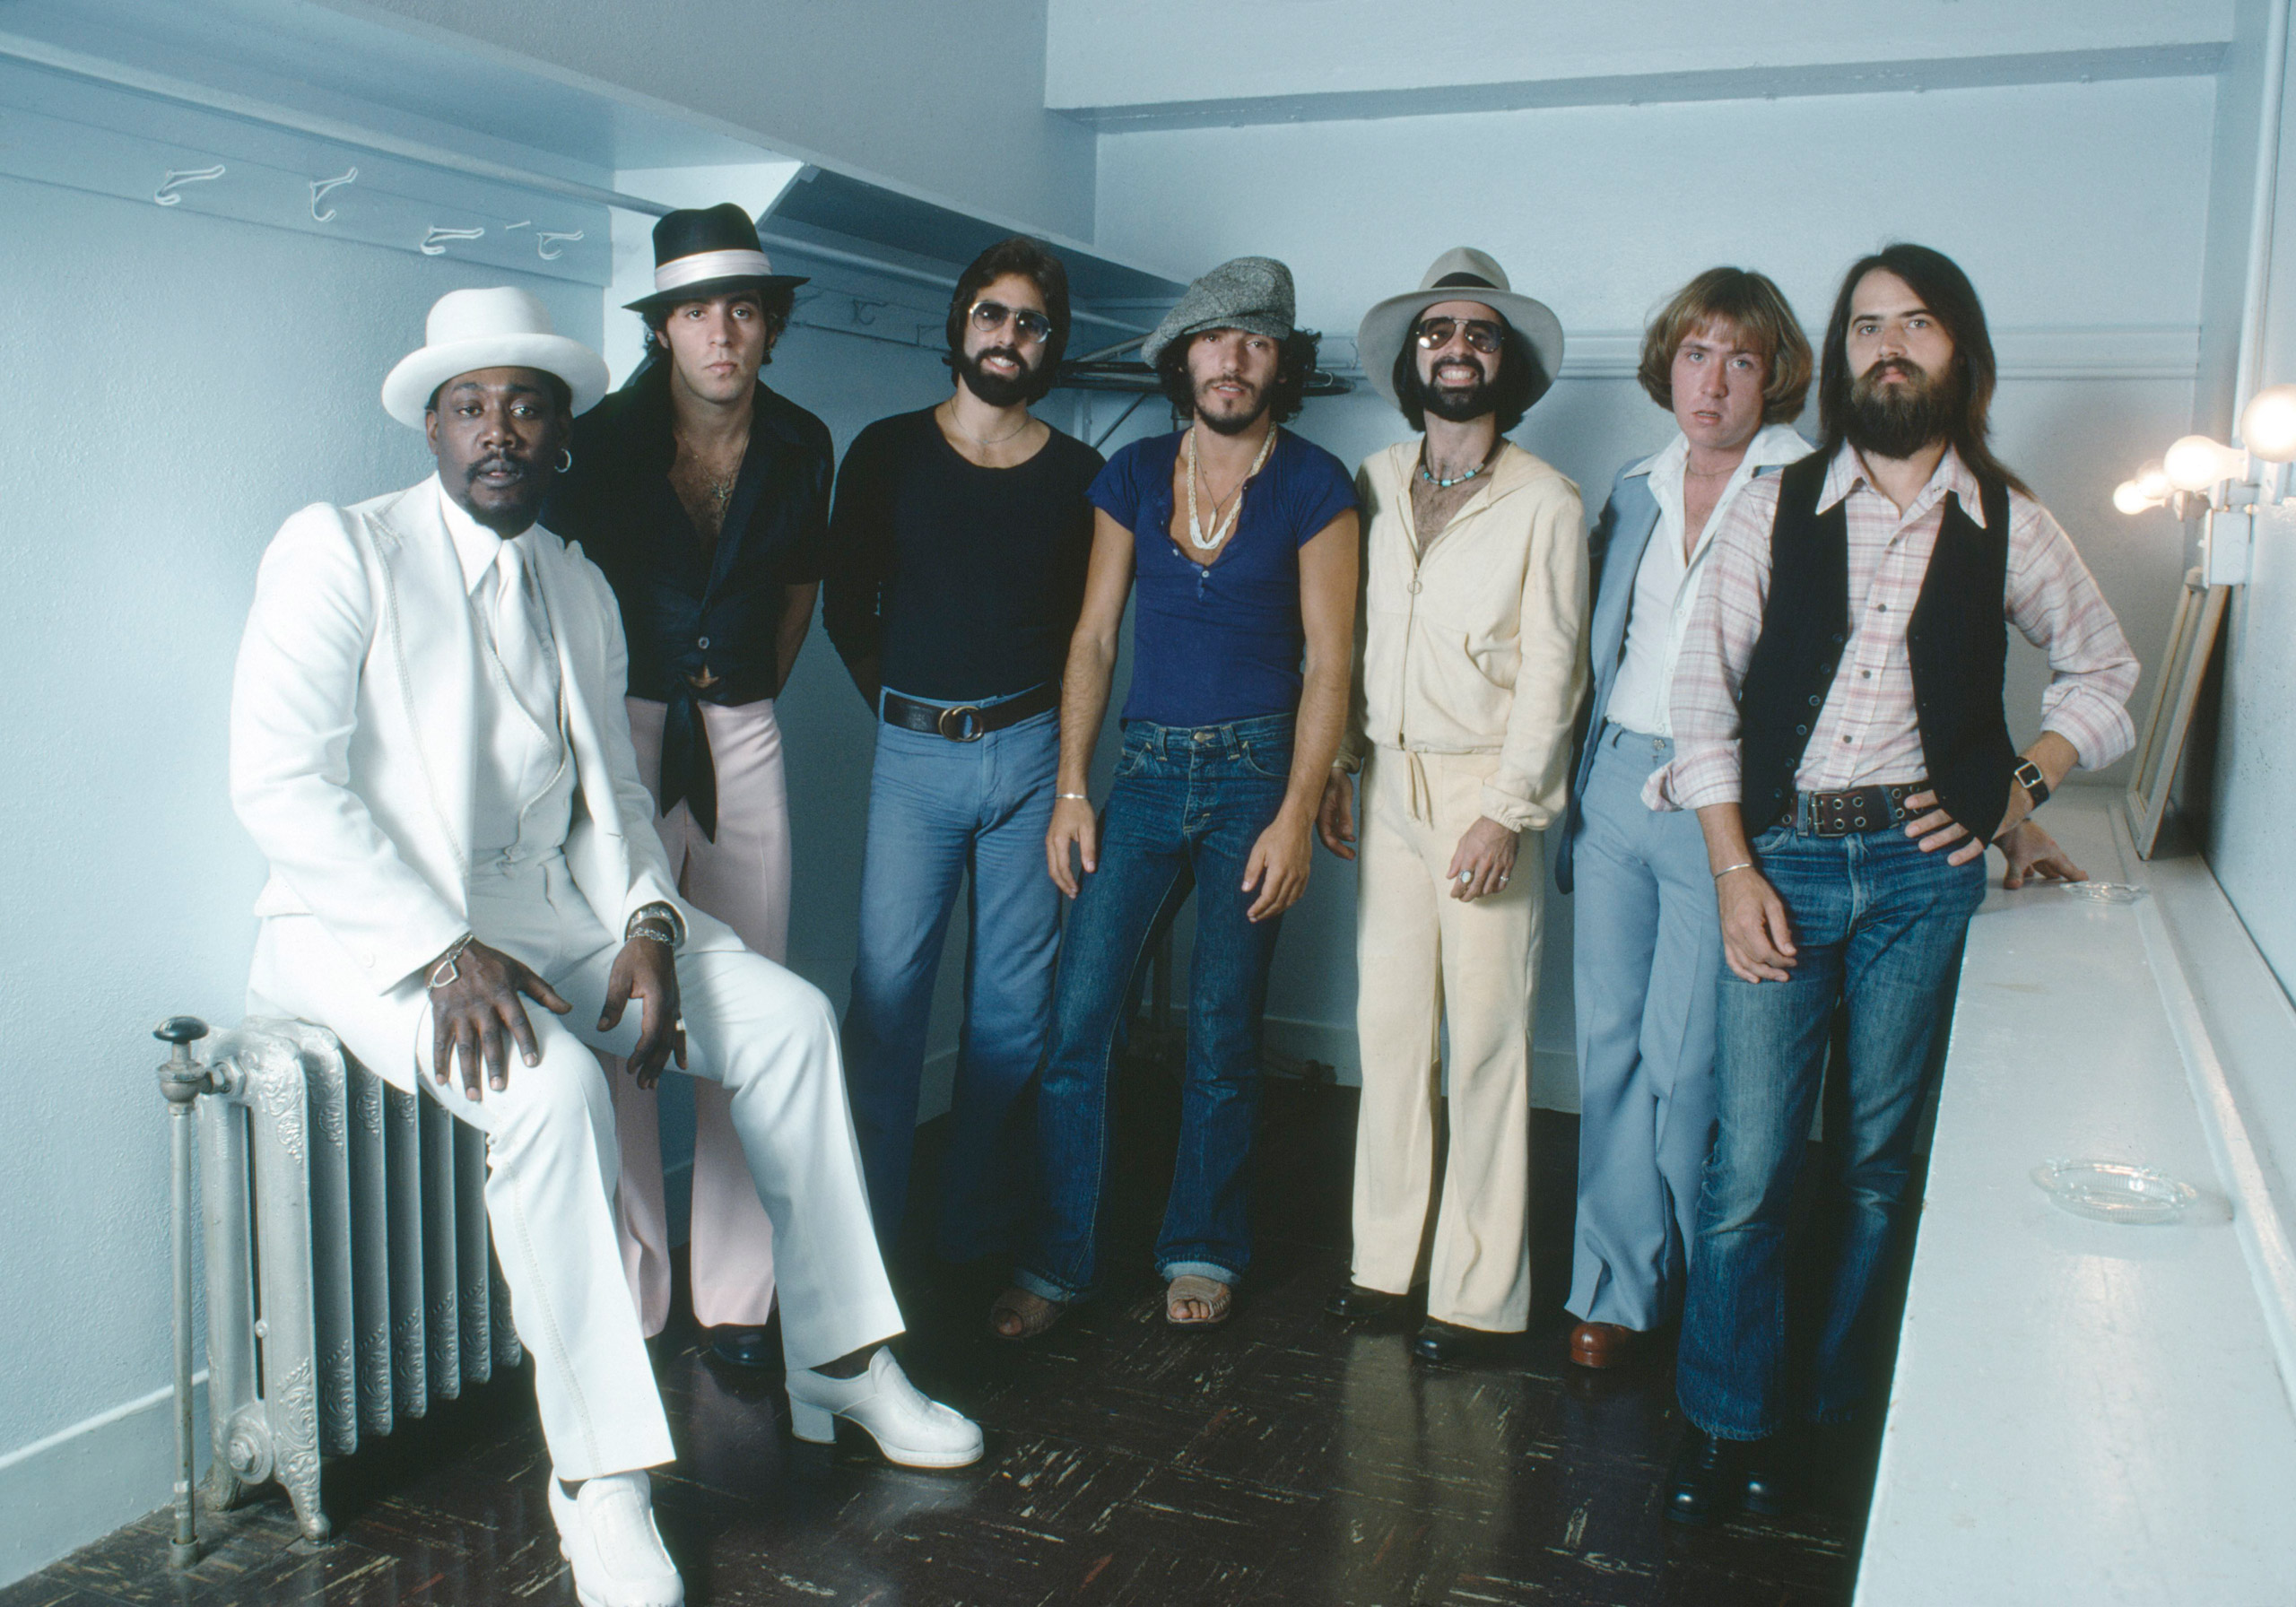 Bruce Springsteen and the E Street Band in a backstage dressing room in Oklahoma City, Oklahoma.